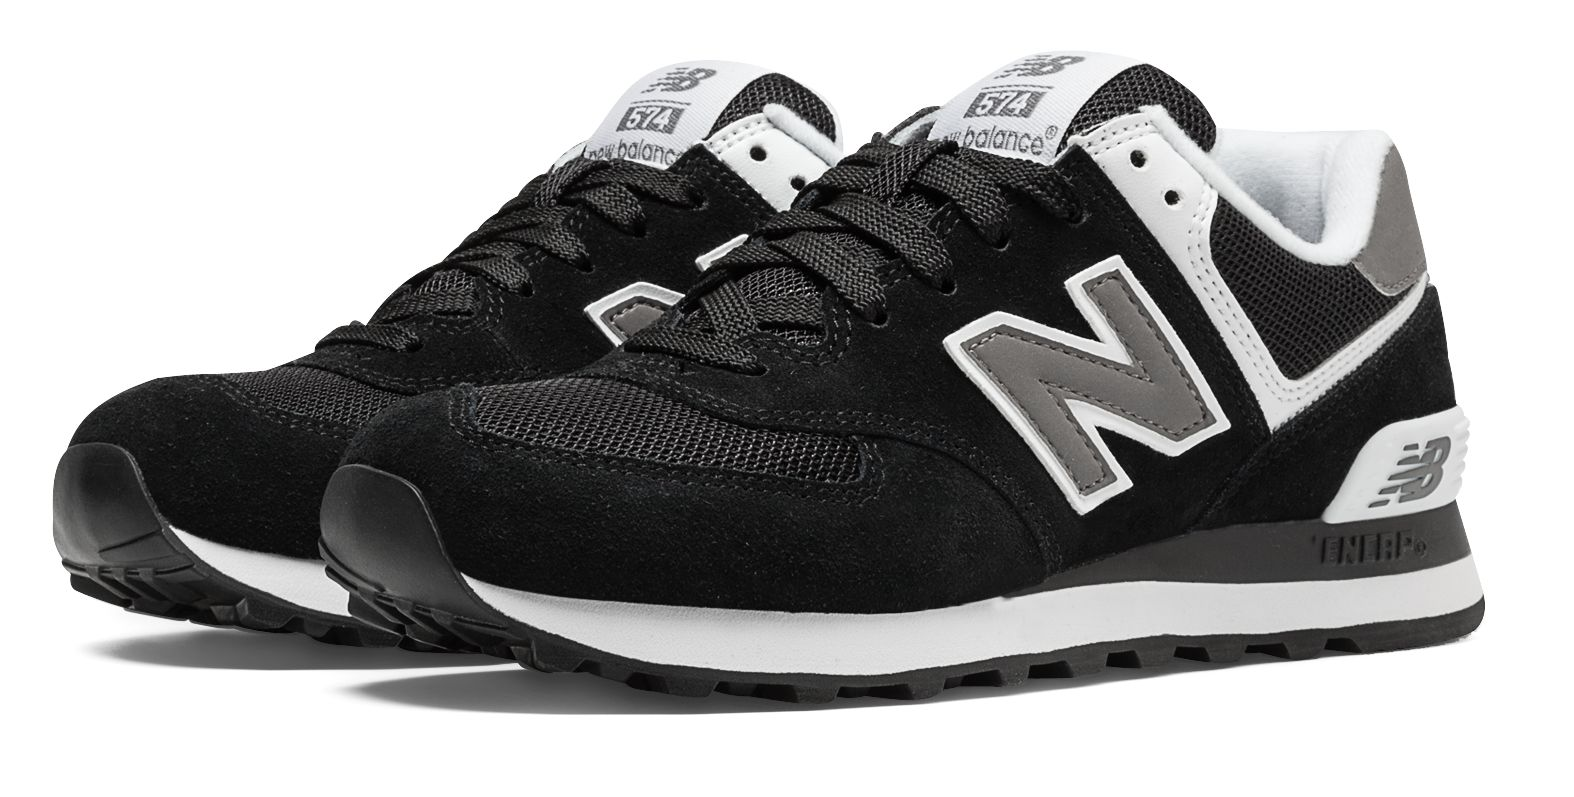 New Balance Women's 574 Core Shoes Black with White | eBay